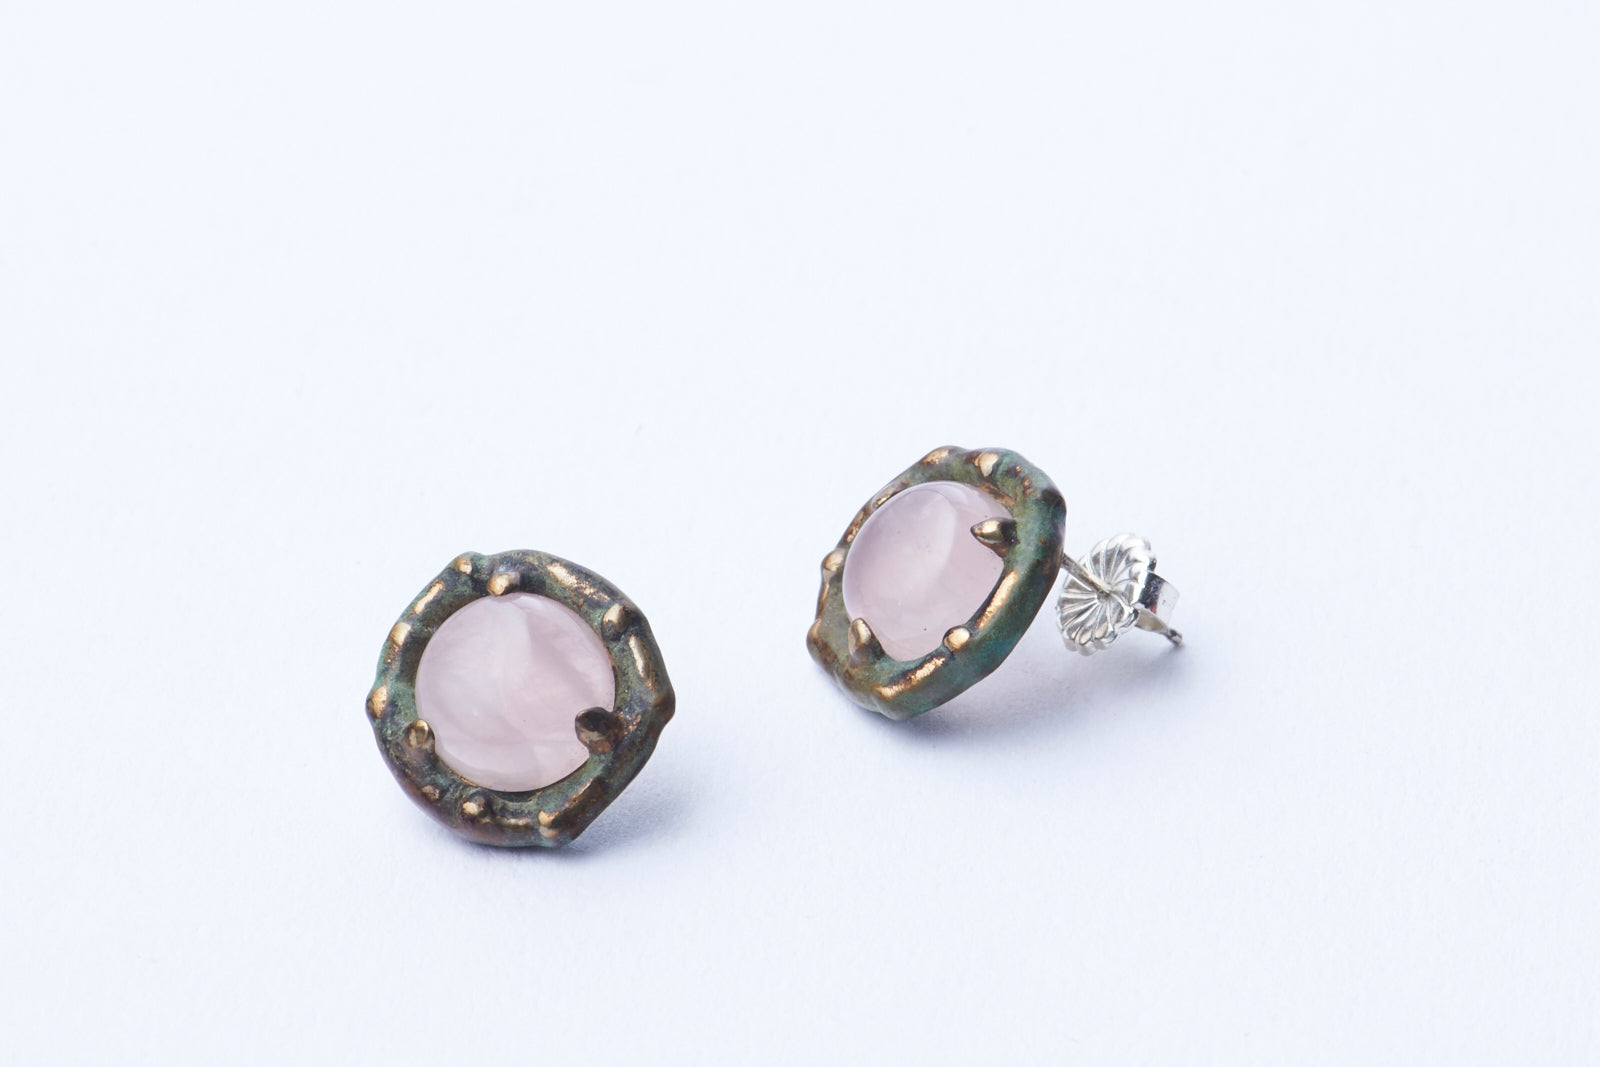 Edamame Retro Earrings in Rose Quartz and Green Jade